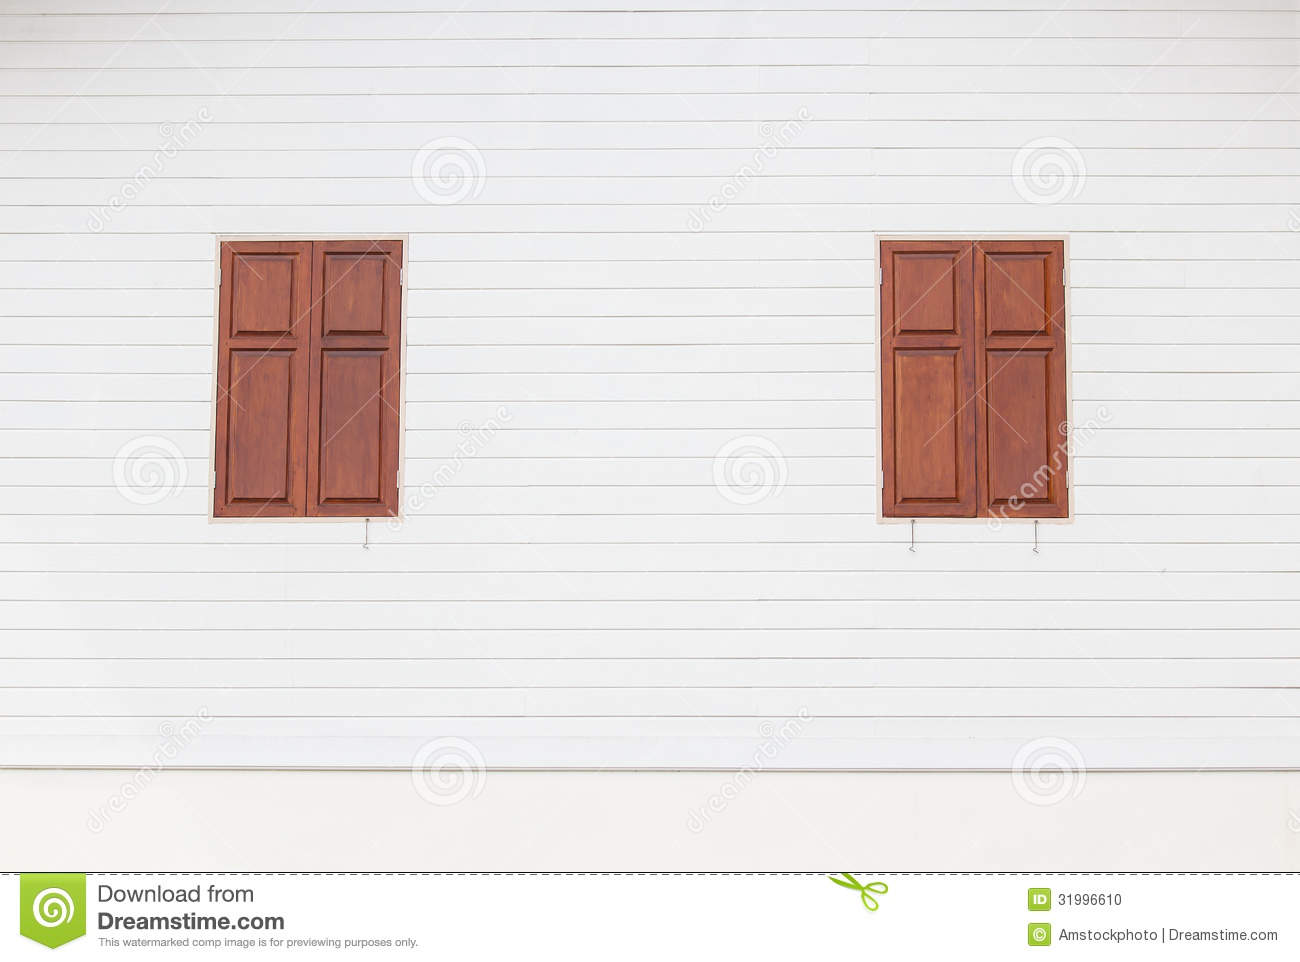 White Wood House : Brown Wooden Windows On White Wooden House Stock Photo - Image ...